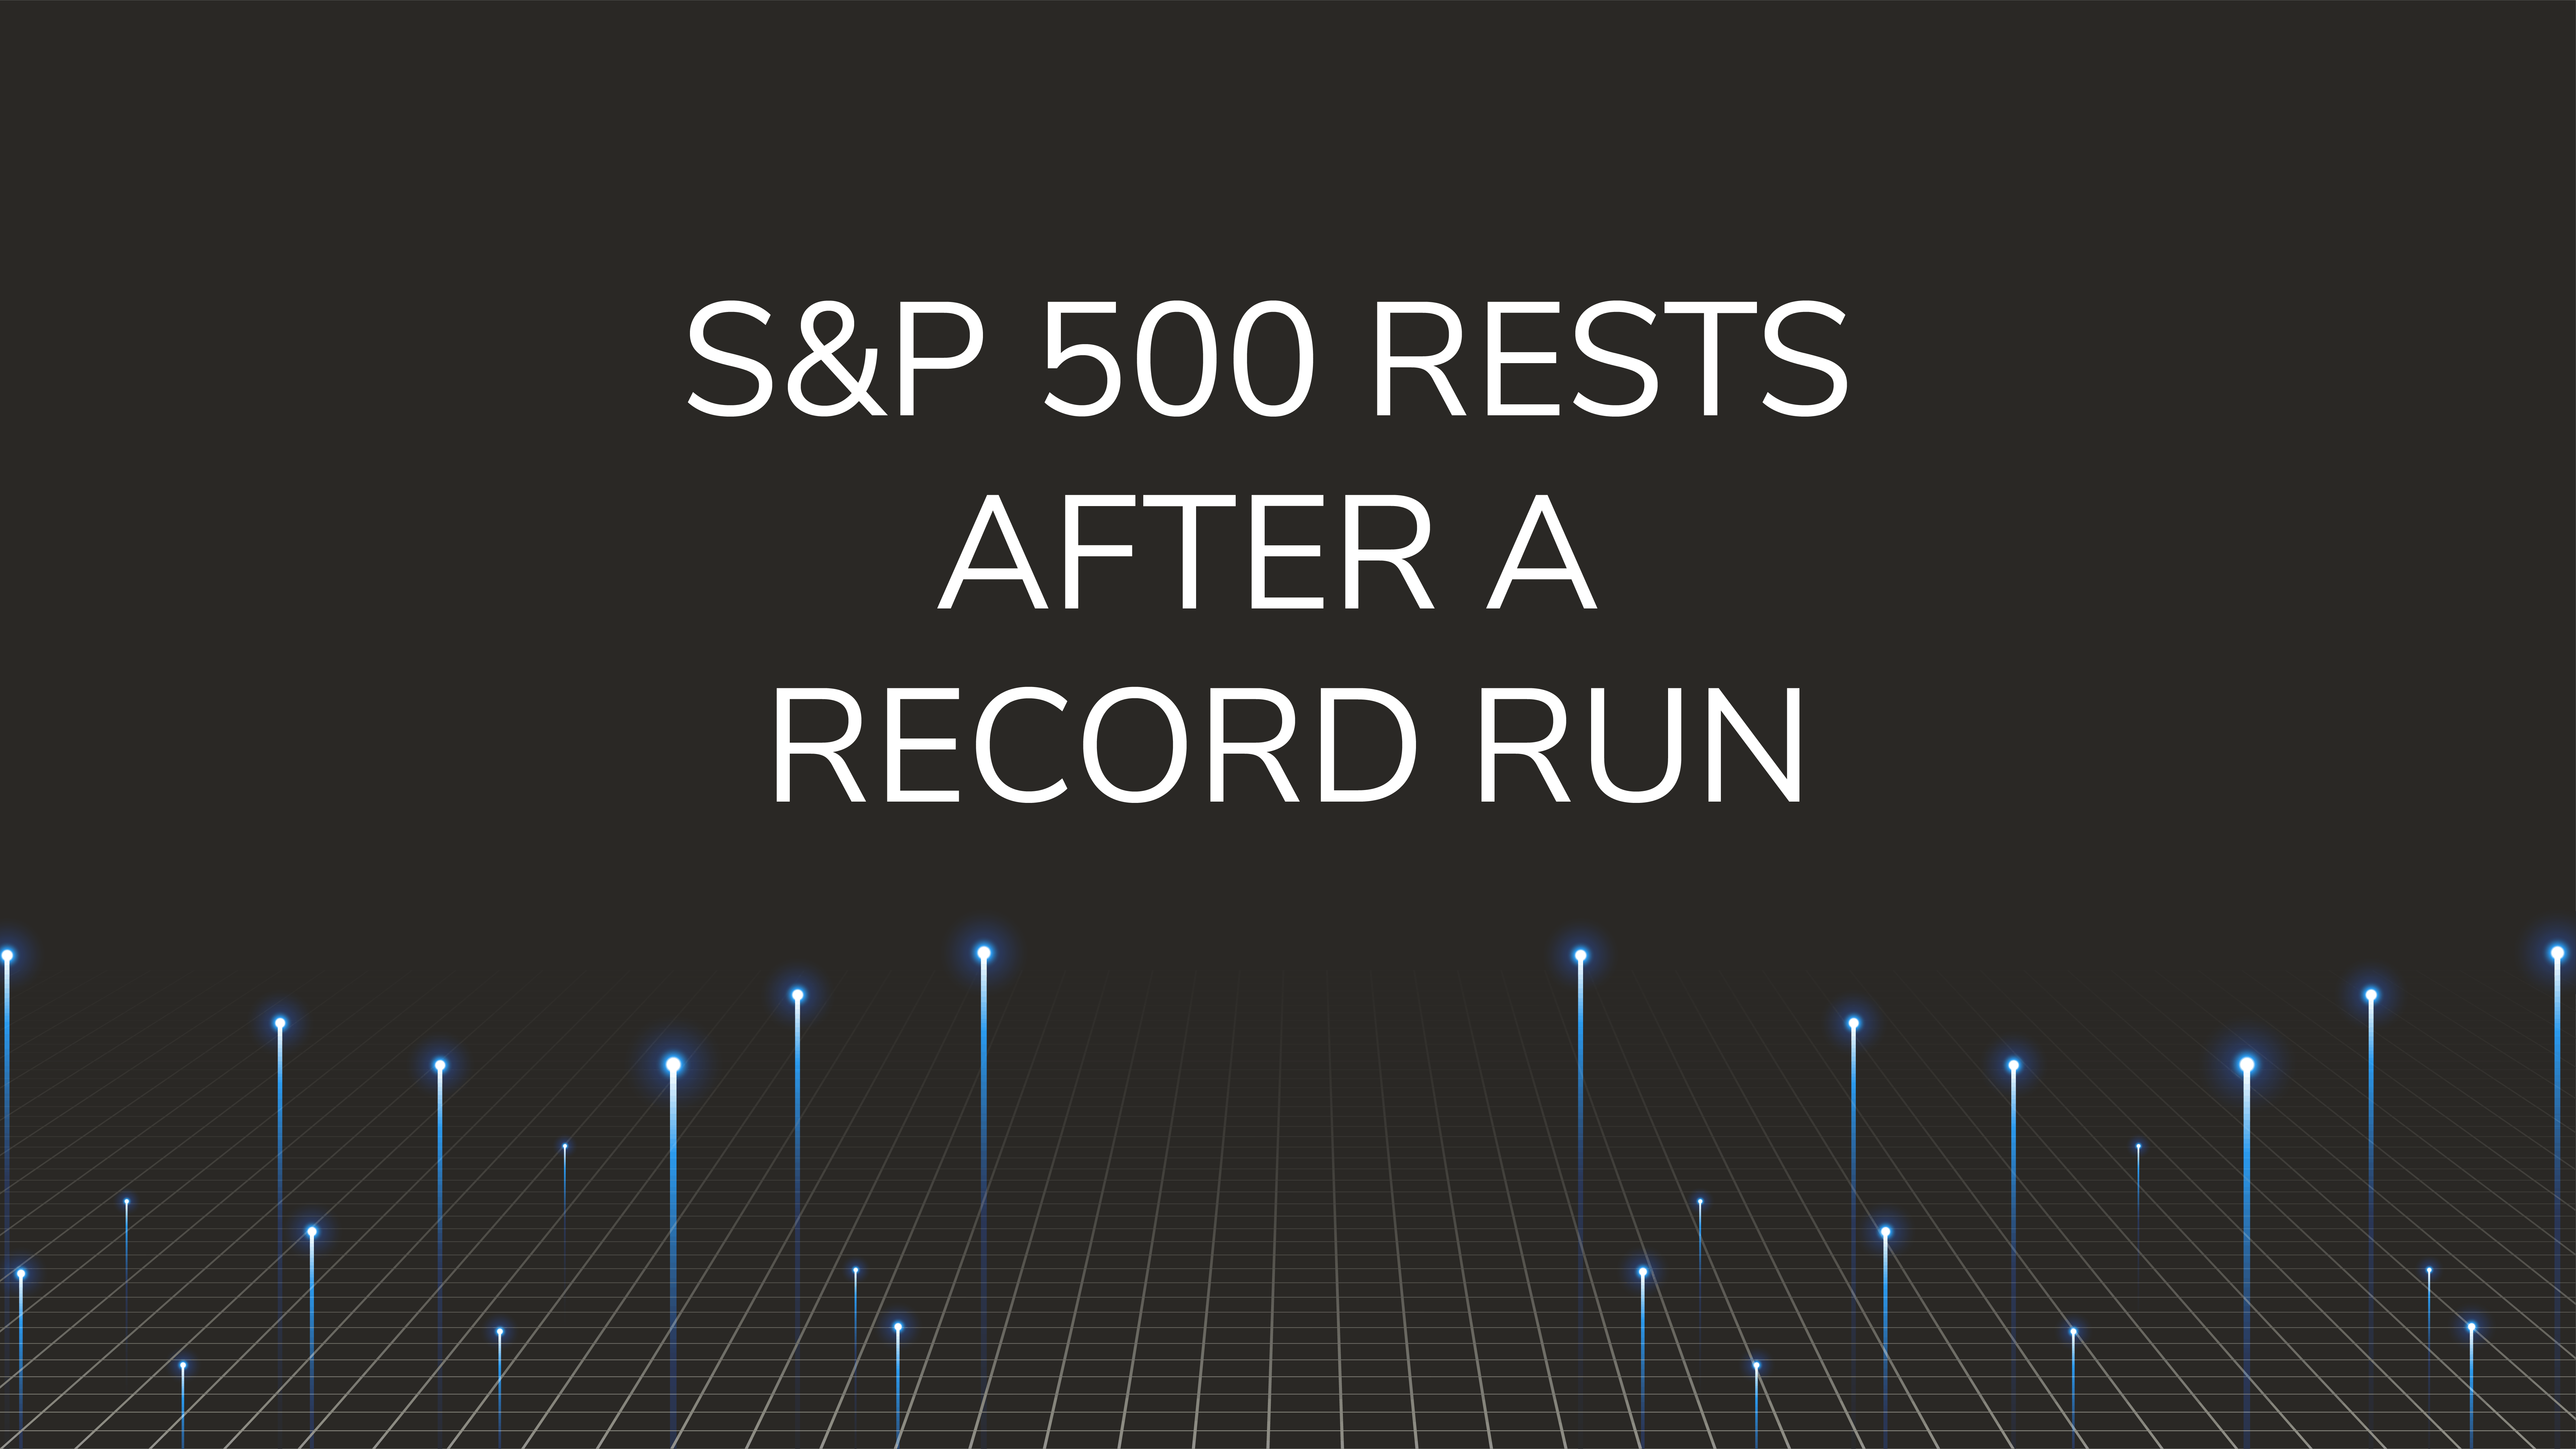 S&P 500 Rests  After a Record Run